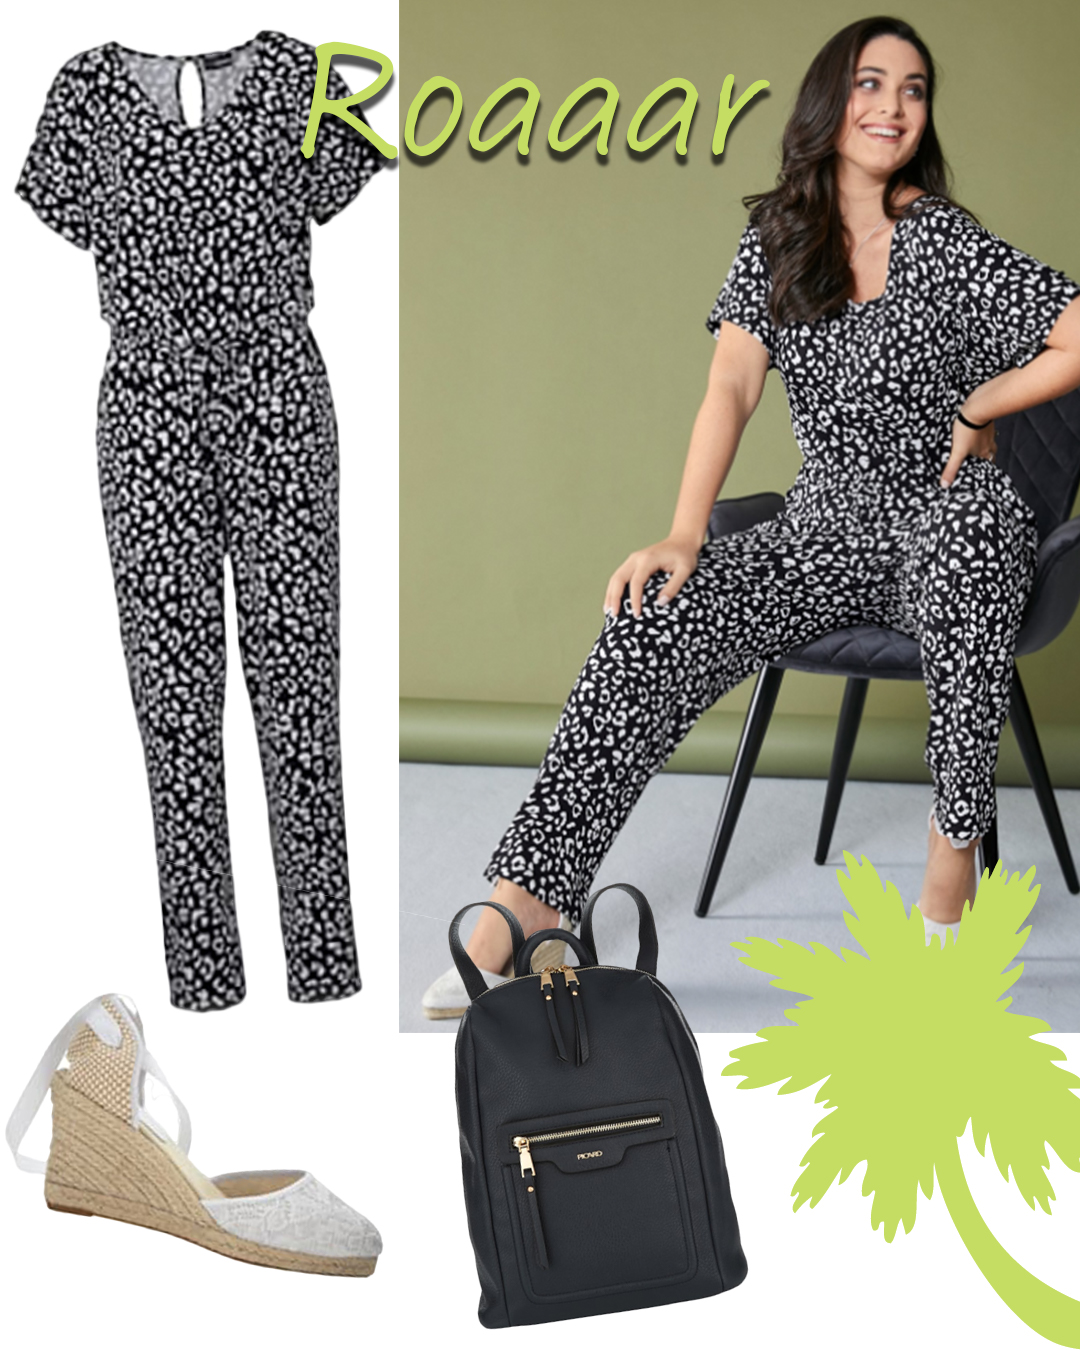 missesviolet-curvy-fashion-curvy-sommer-outfits-fuer-den-alltag-mit-miamoda-animalprint-collage